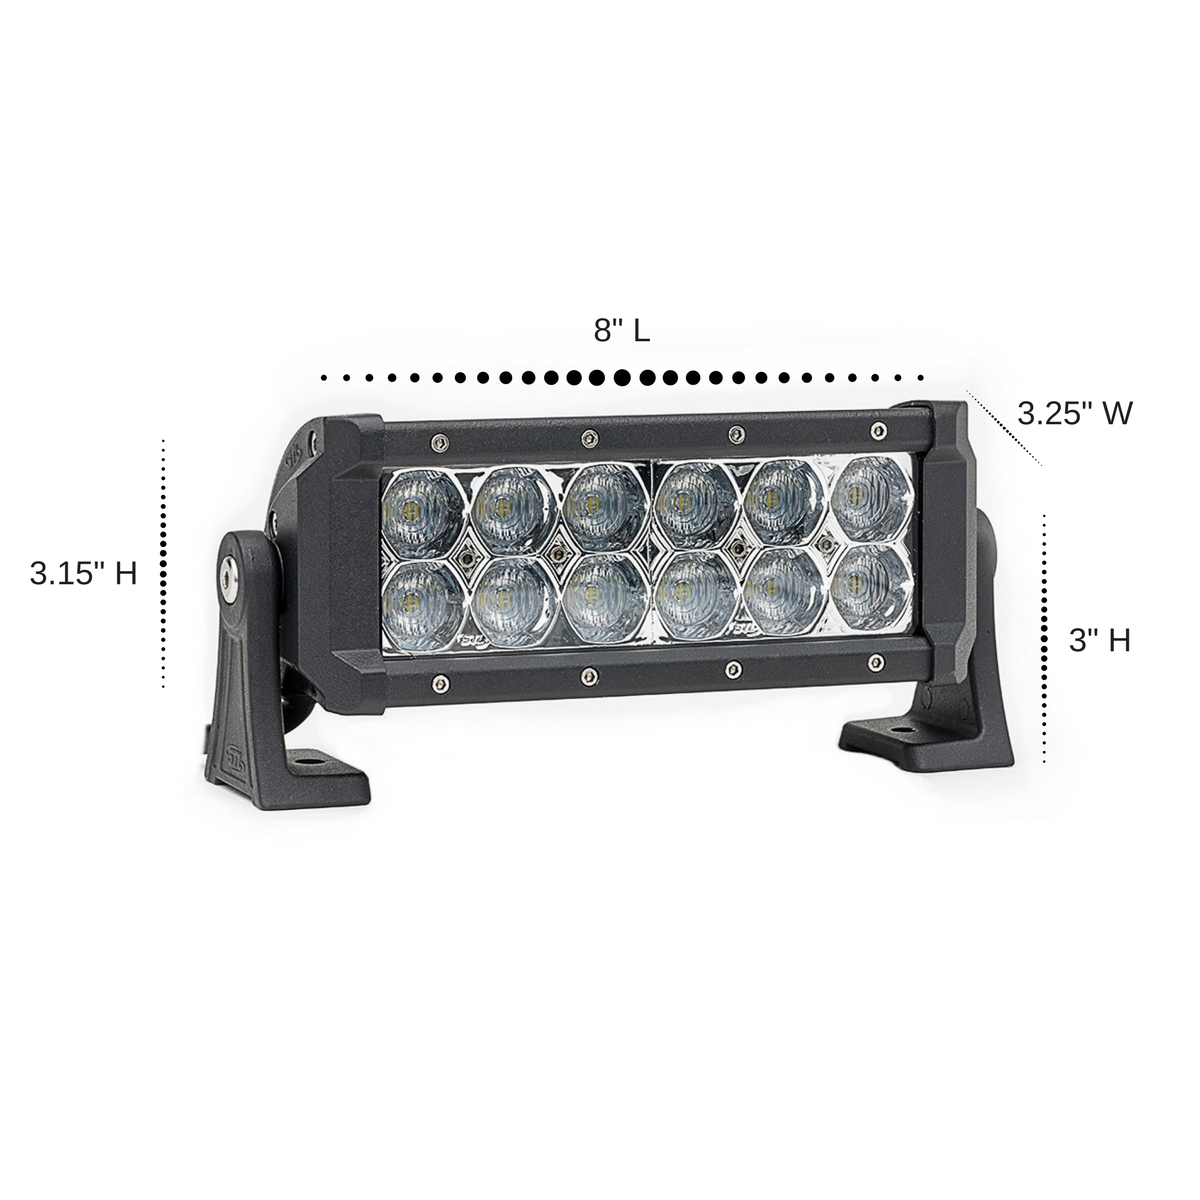 4 pack dual carbine 8 off road led light bar stl 4 pack dual carbine floodlight 8 inch off road led light bar dimensions aloadofball Gallery